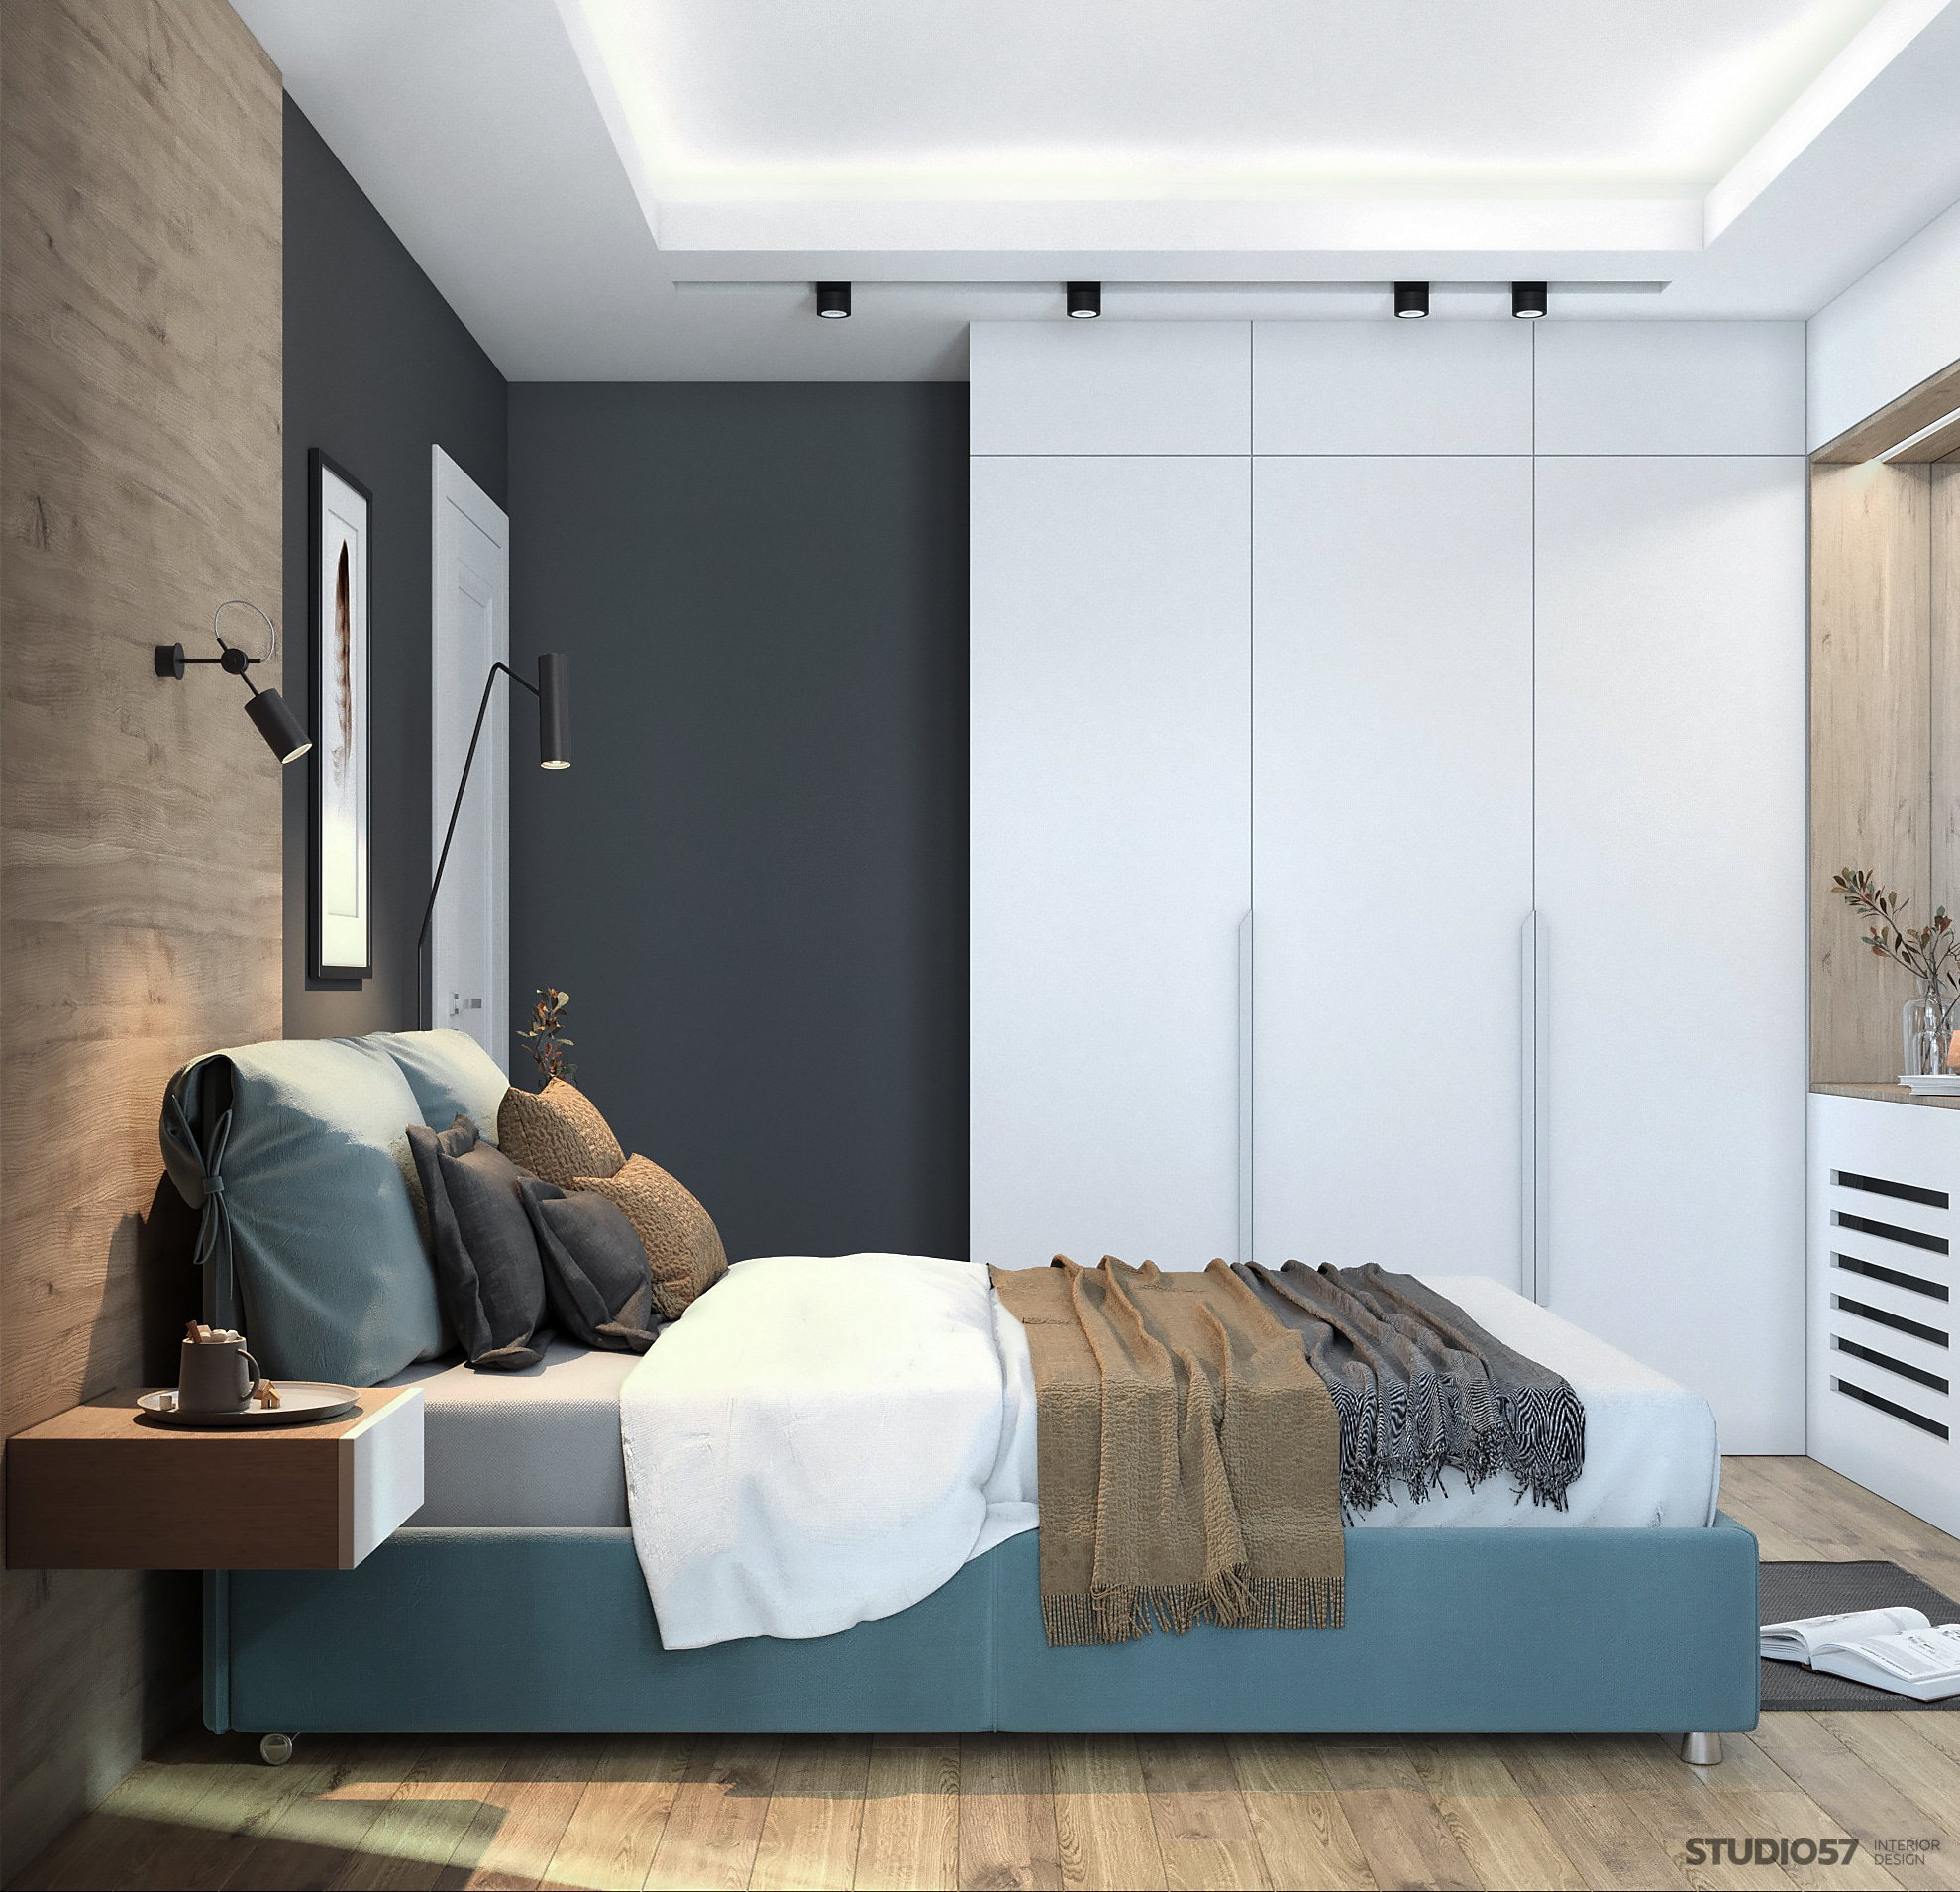 Interior bedroom in a modern style image